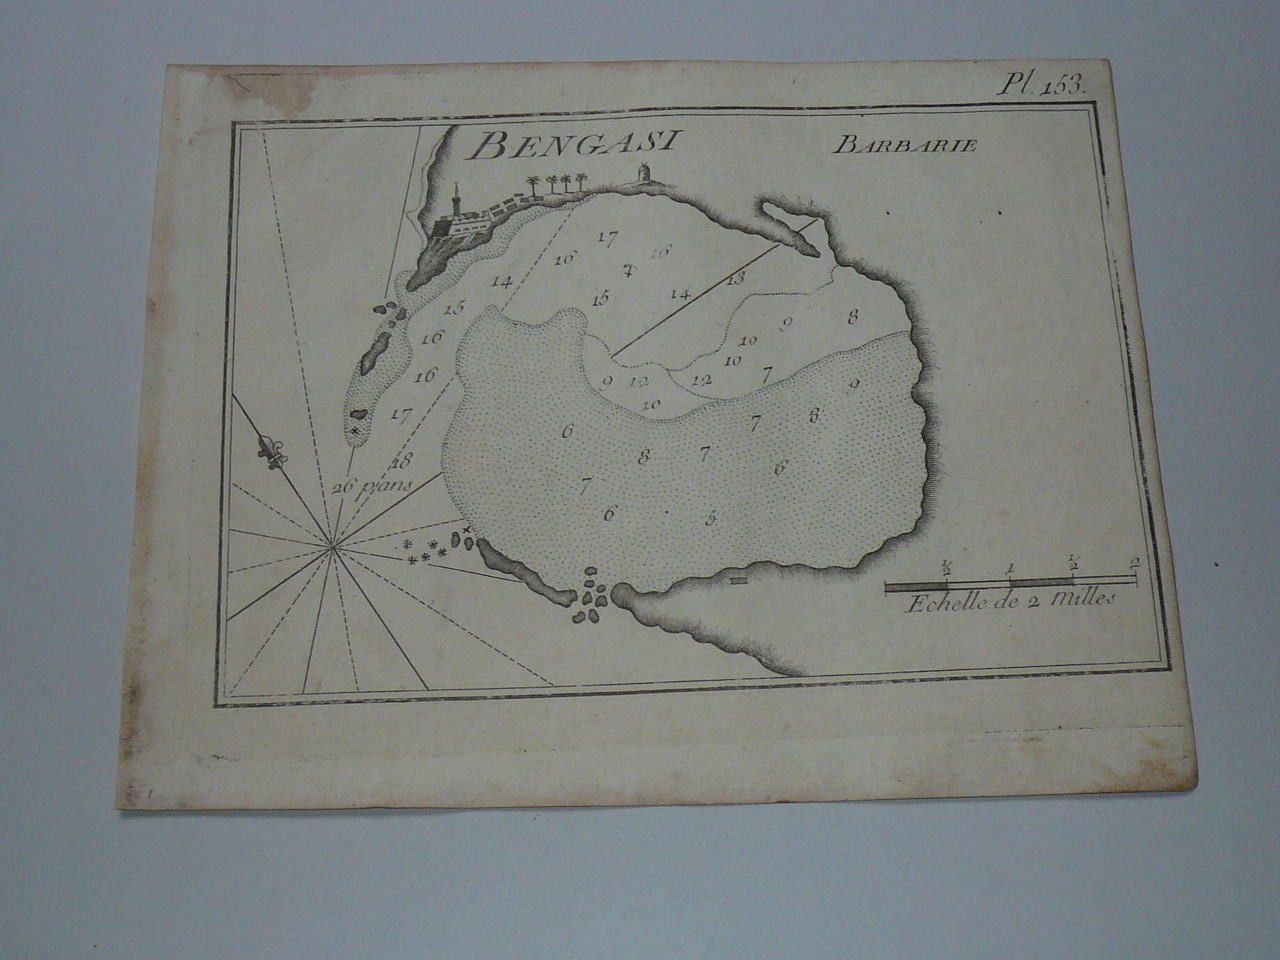 Banghazi/Bengasi/Libya, nautical map, anno 1795, Roux Joseph